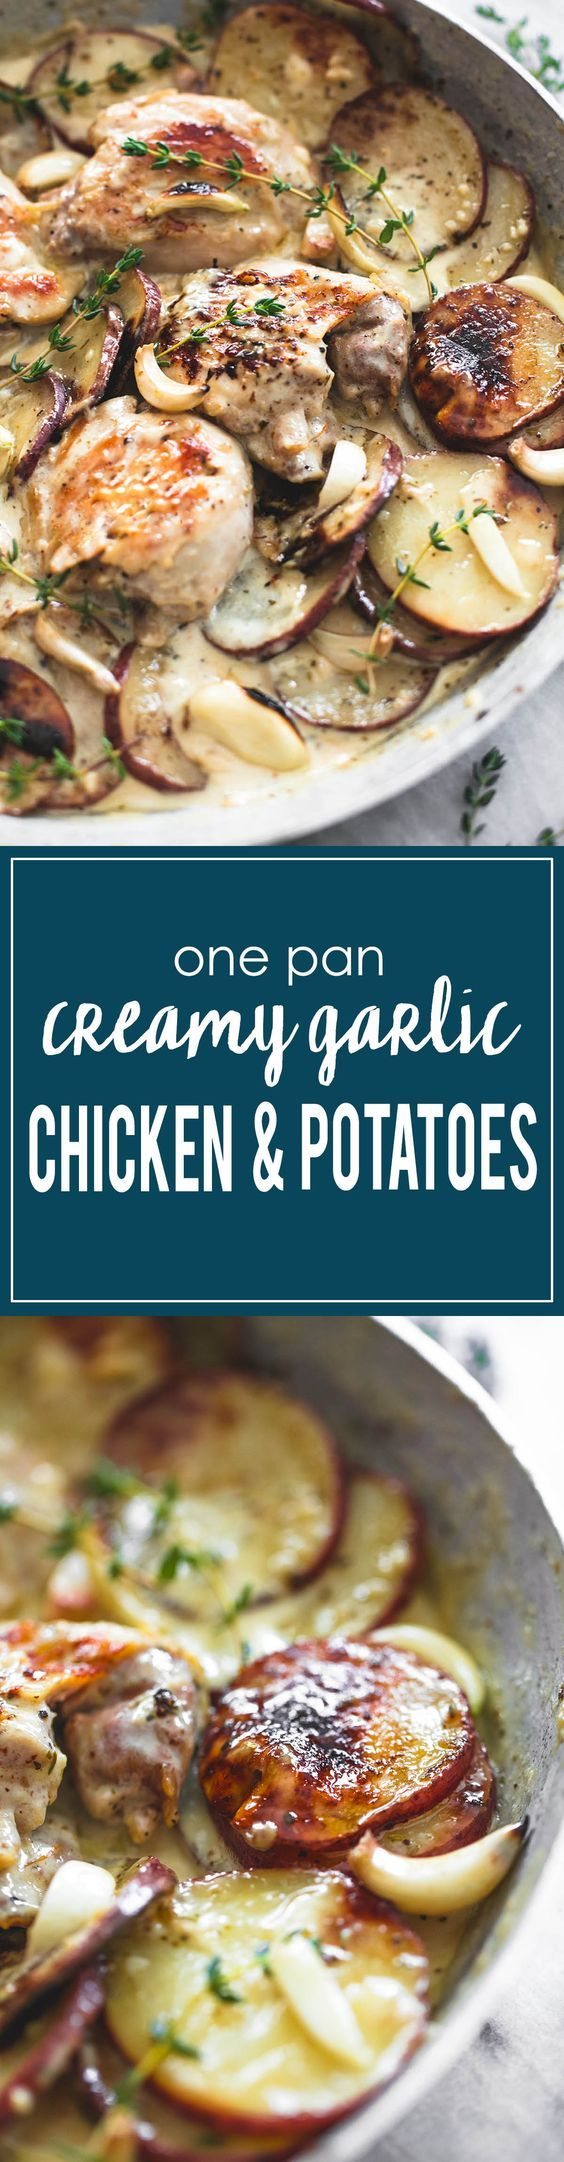 (6) One Pan Creamy Garlic Herb Chicken & Potatoes | Recipe